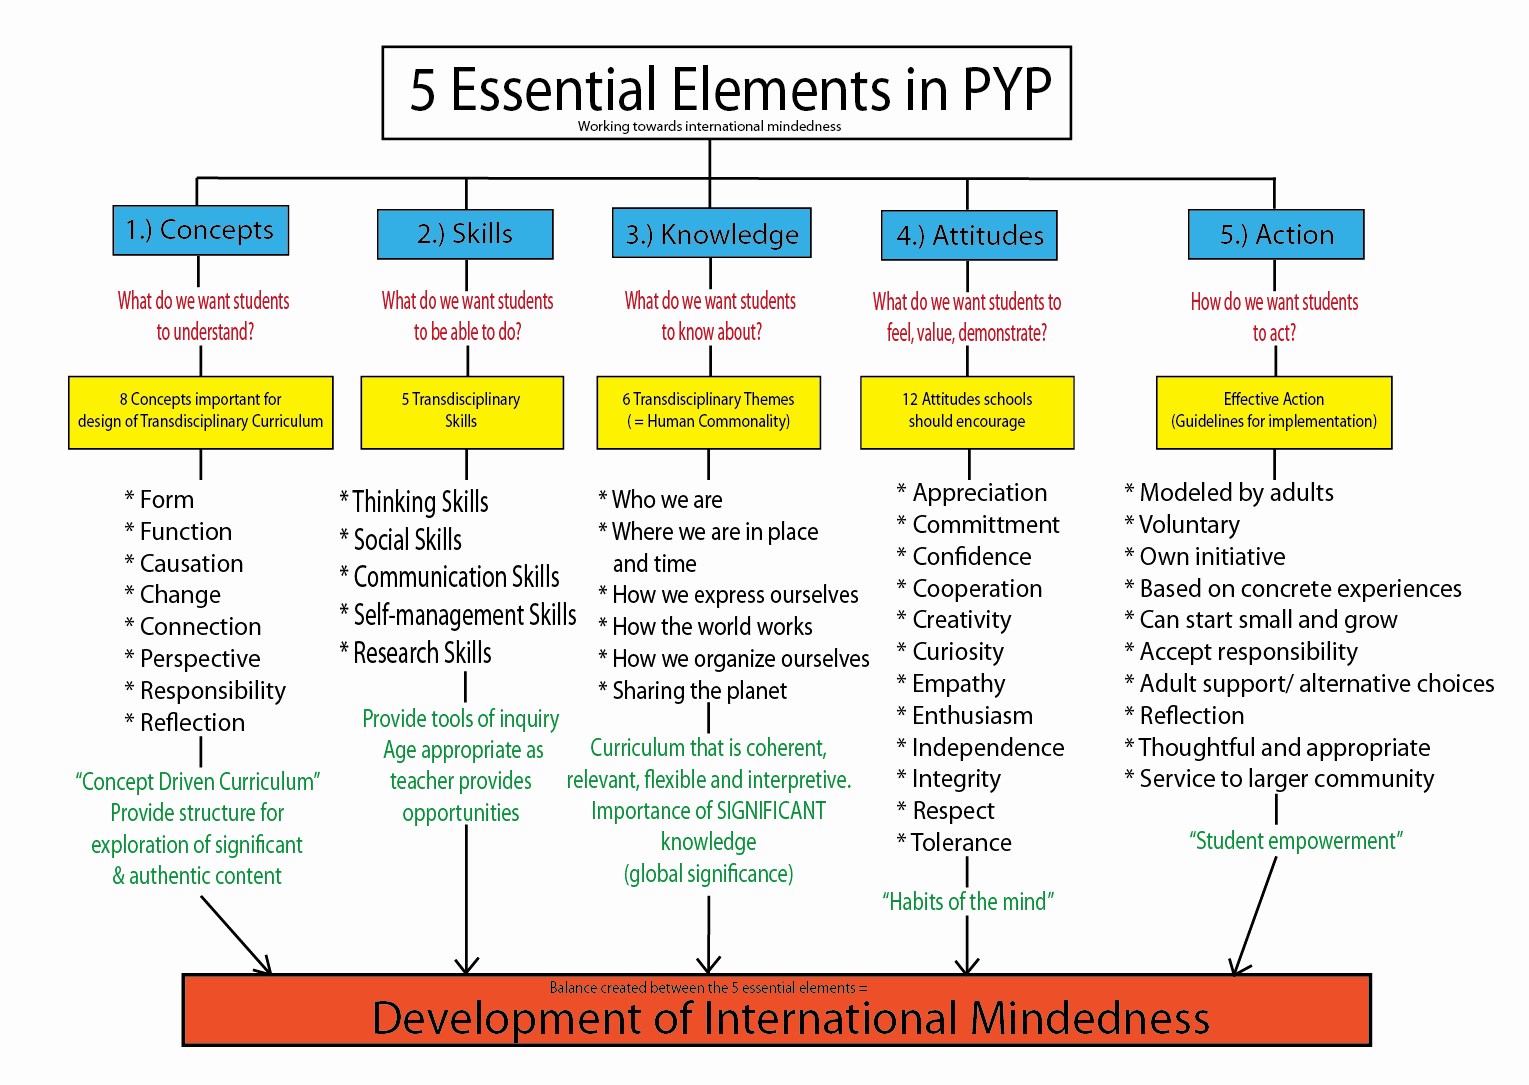 Ib Lesson Plan Template Fresh Graphic organiser Of the 5 Essential Elements Of Pyp by